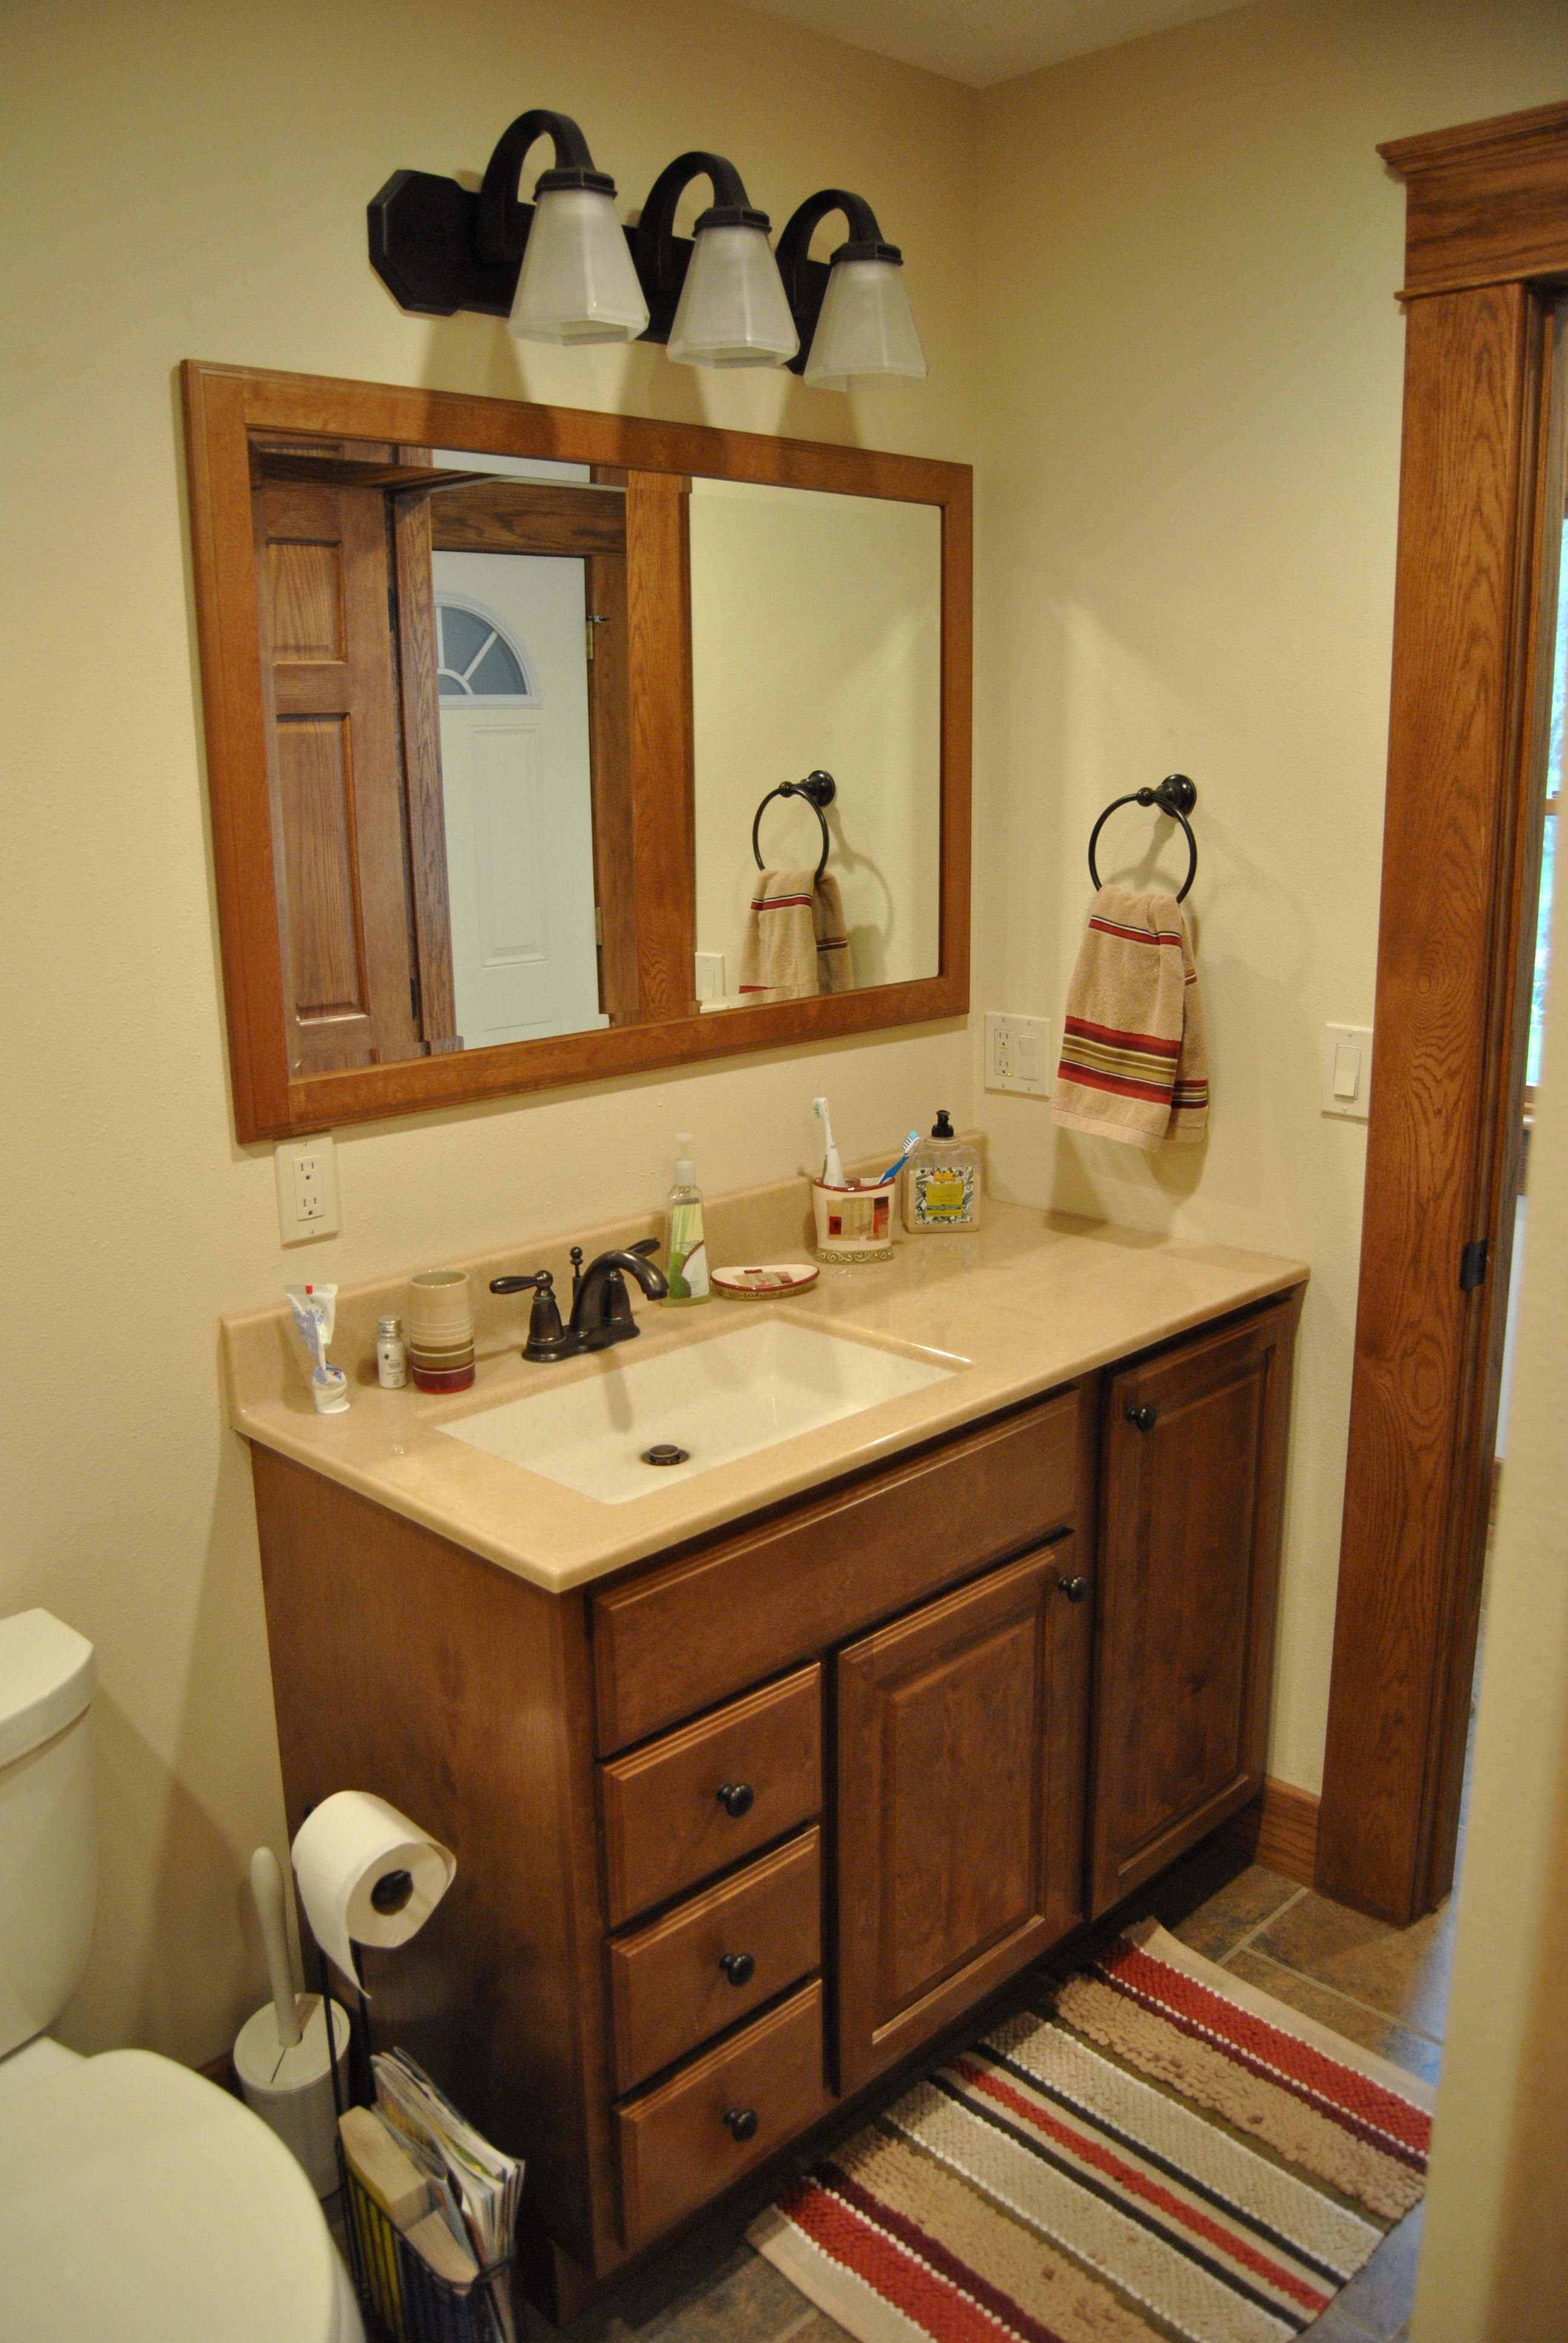 Antique White Kitchen Cabinets Farmhouse For Sale Bertch Bath In Birch With Quebec Door Style And ...